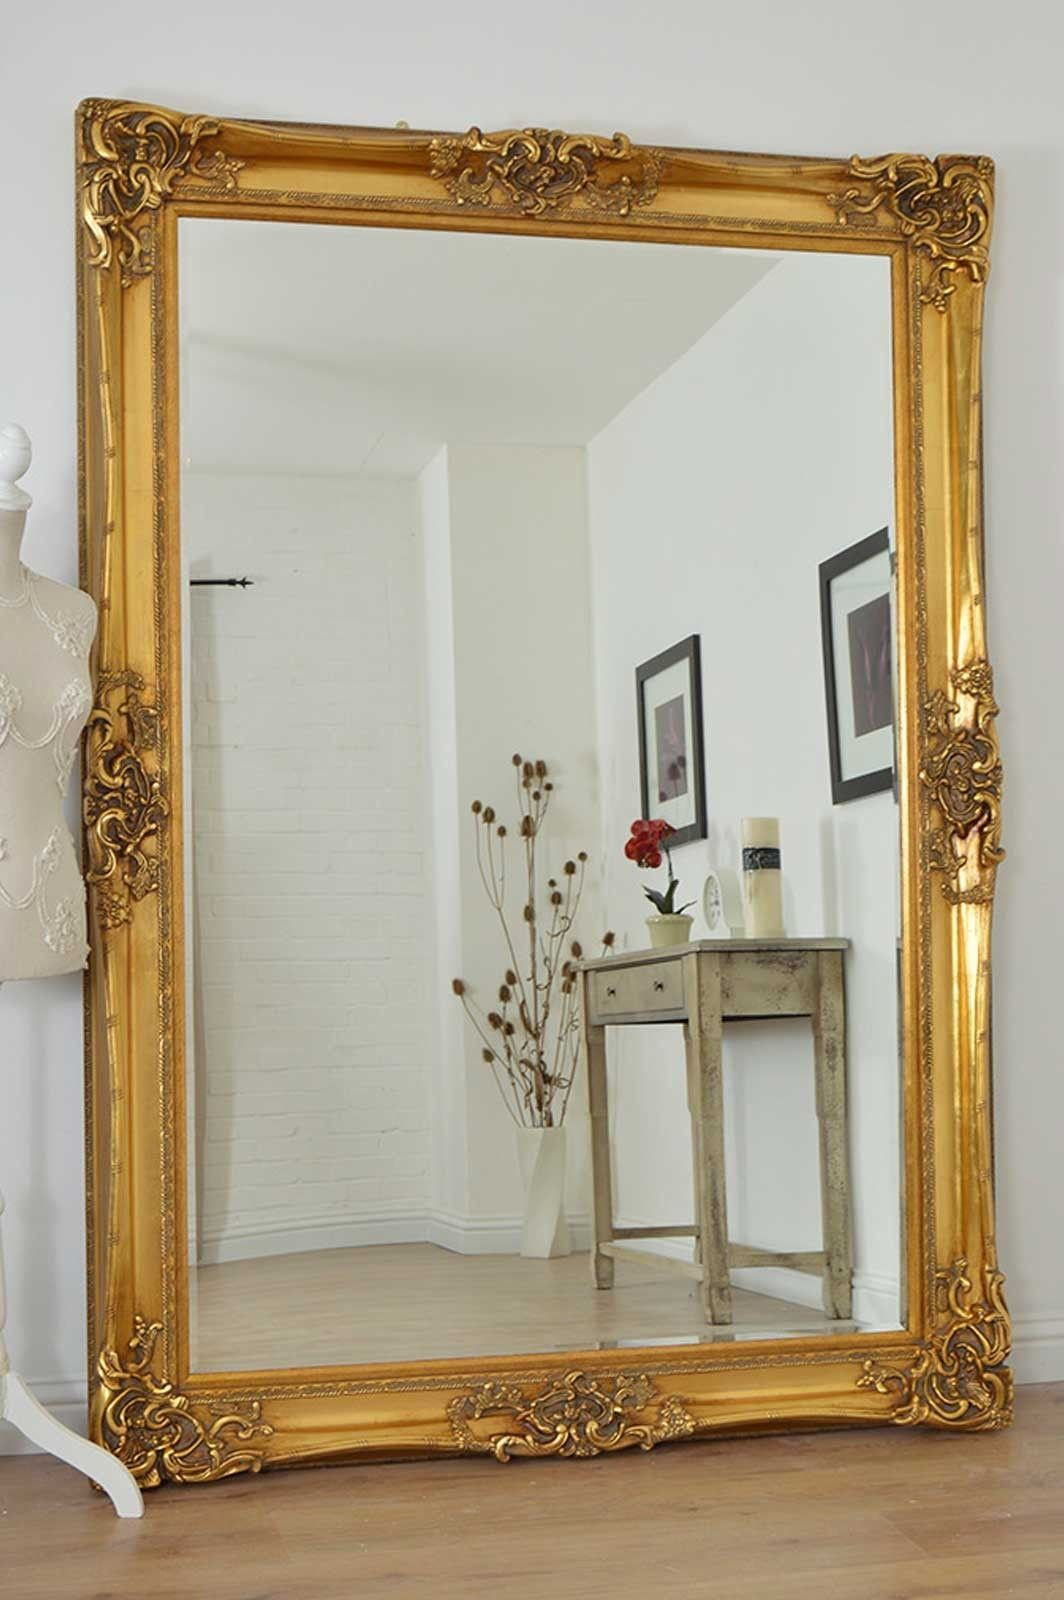 Gold Framed Wall Mirrors Long Mirror Gold Mirror Wall Oversized